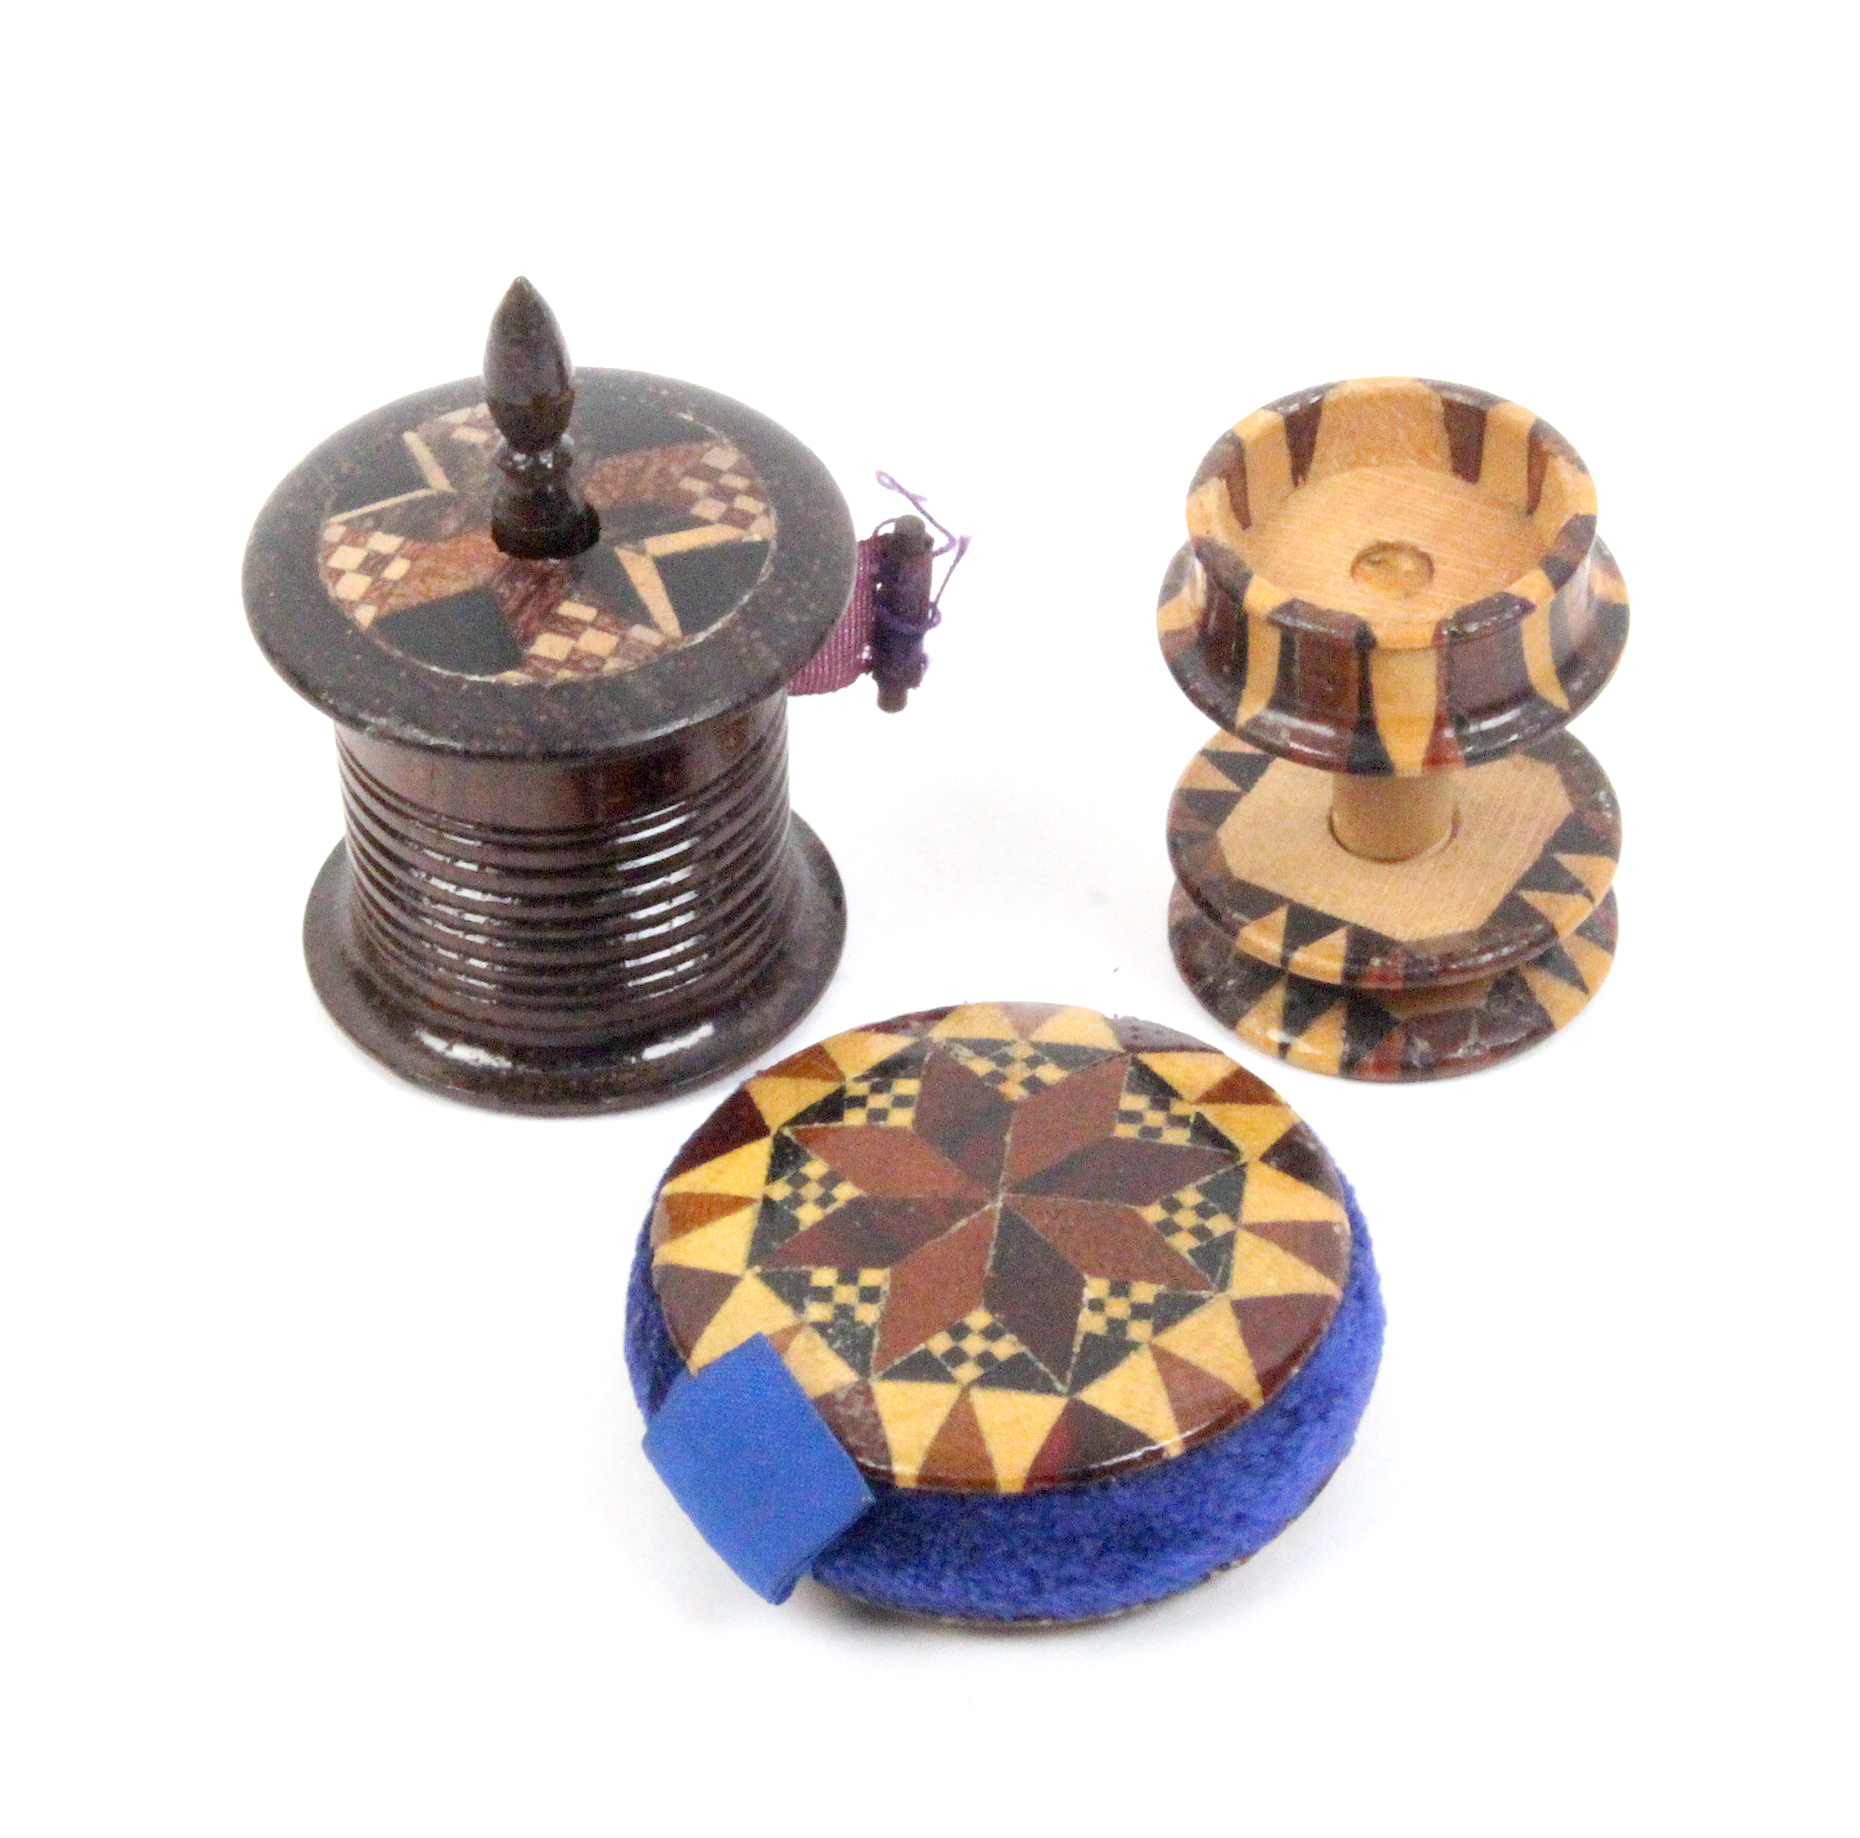 Lot 12 - Three pieces of Tunbridge ware - sewing - comprising a disc form pin cushion, 3.5cm, a combined